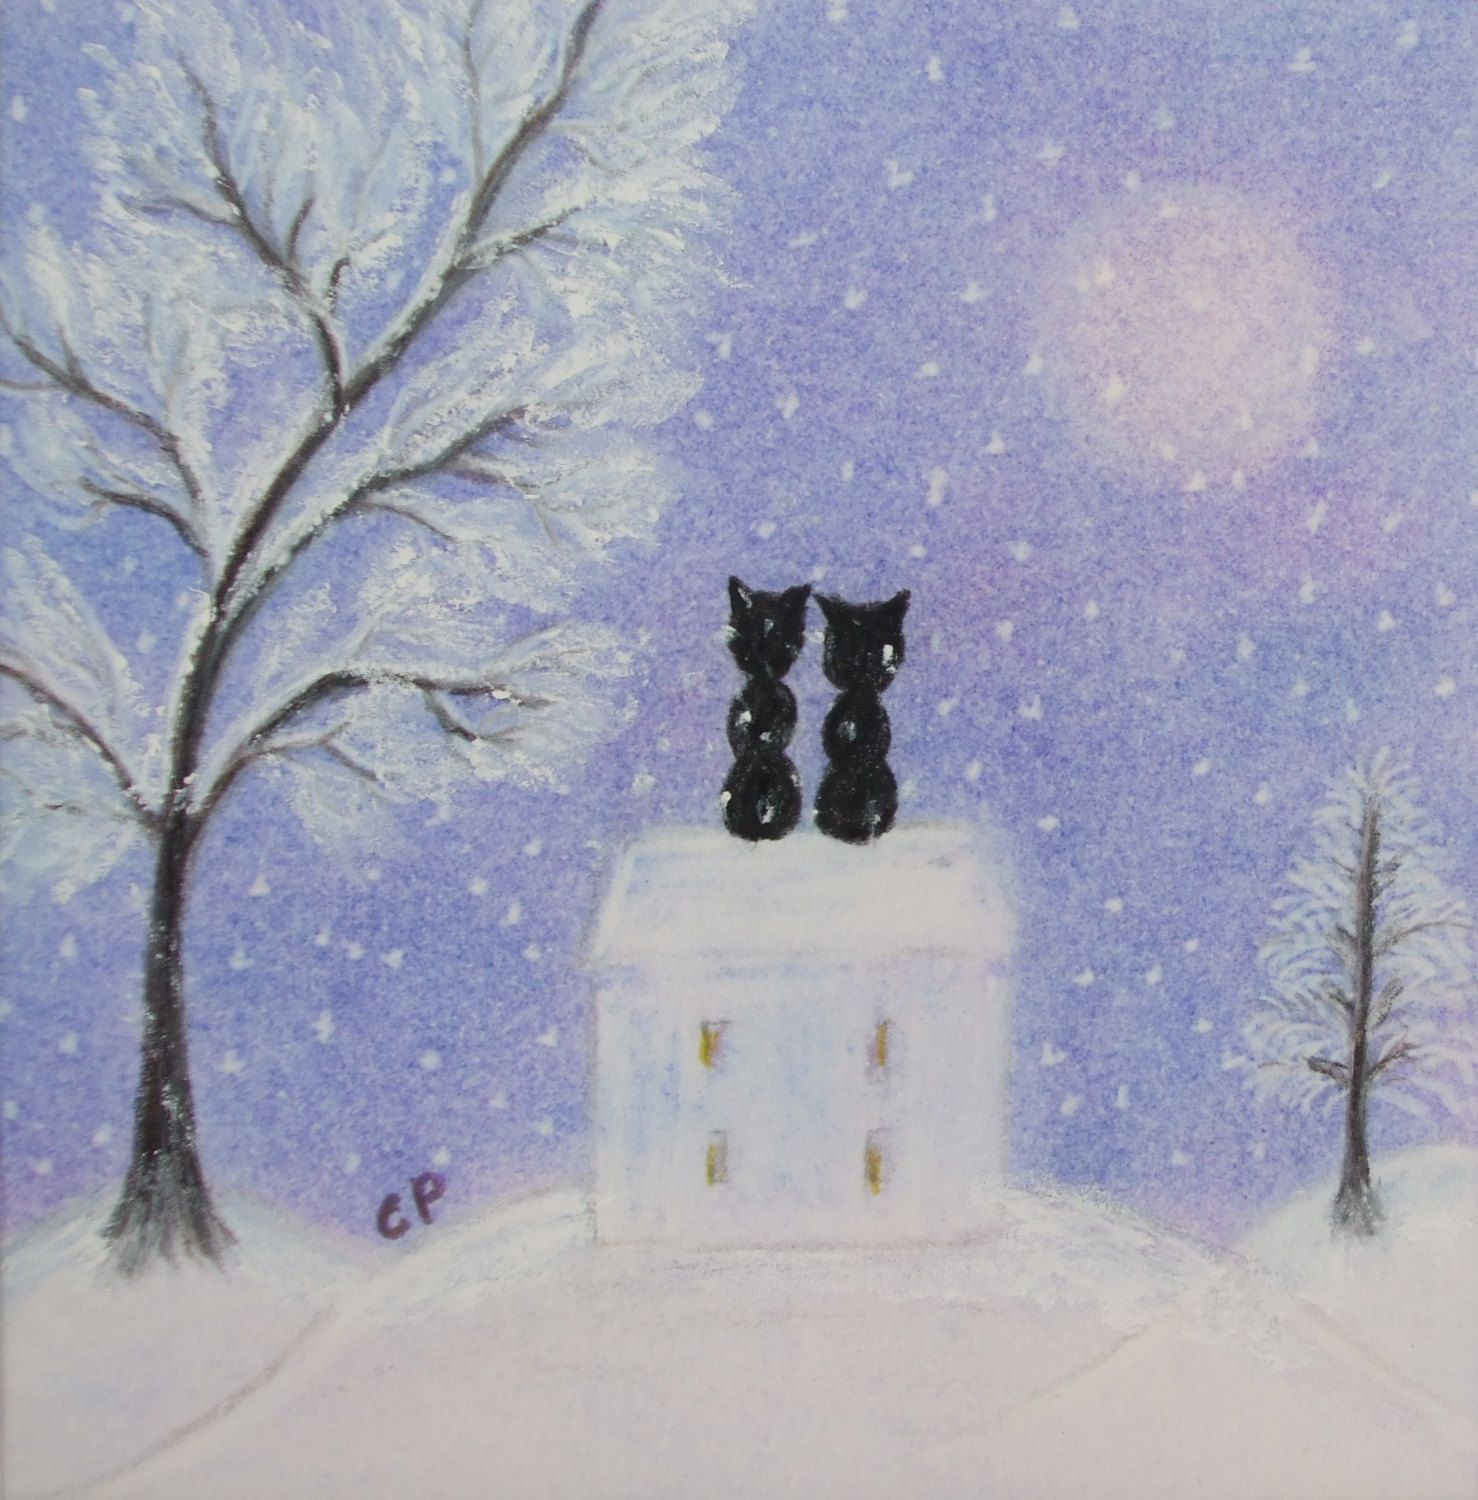 Christmas Cat Card Romantic Art Card Black Cats Moon House Etsy Cat Cards Art Christmas Gifts Romantic Art Black cat house roof stars silhouette